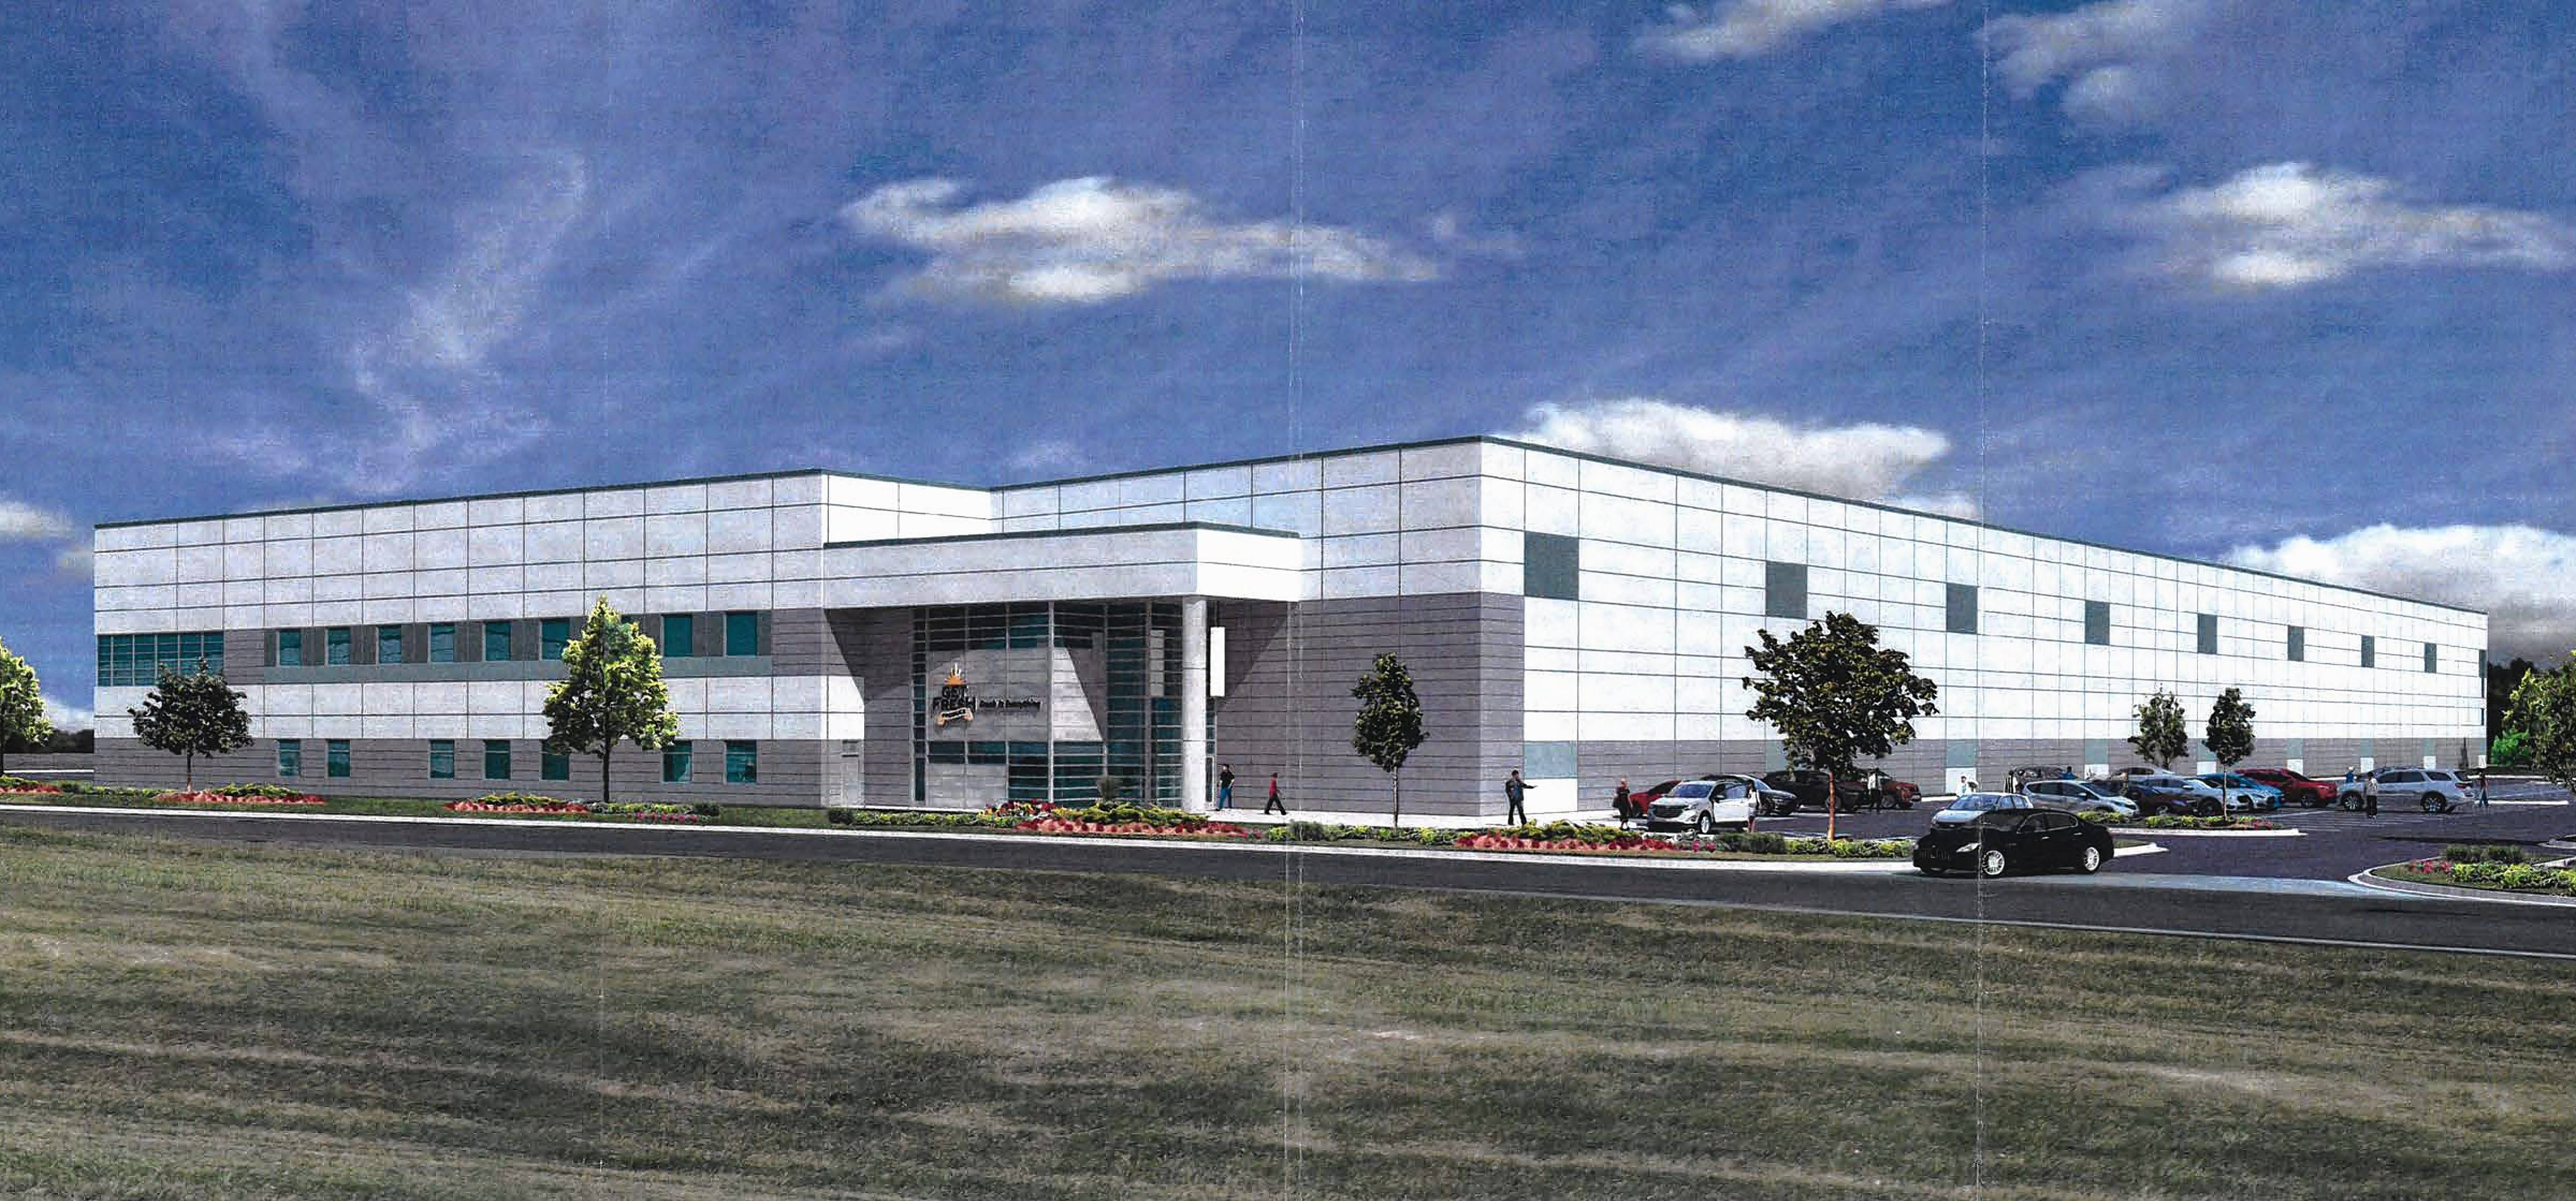 A rendering of Get Fresh Produce's newly approved 151,324-square-foot building in Bartlett's Brewster Creek Business Park, which will expand the company's facilities there.